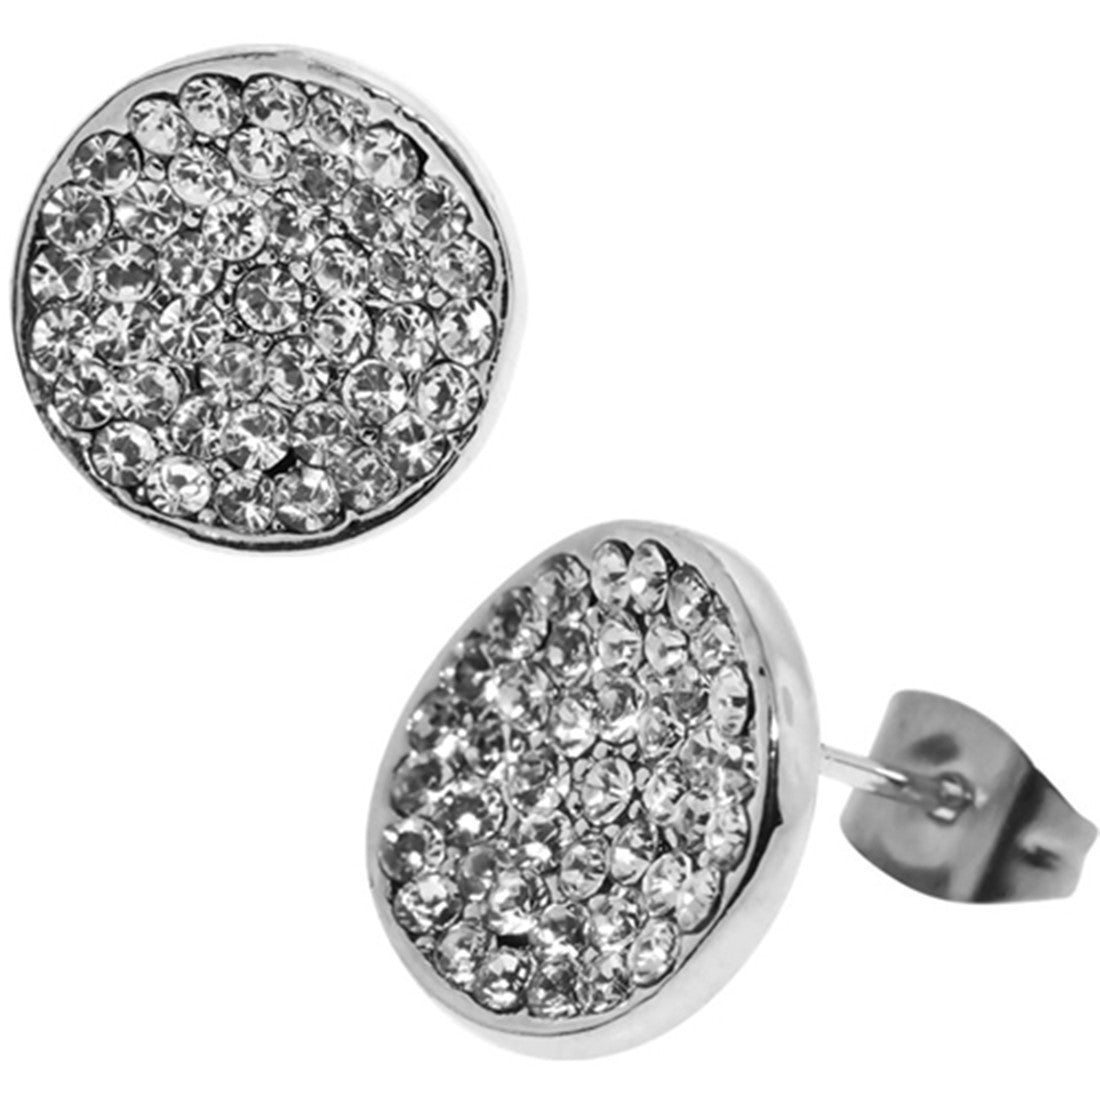 55048307e73e7 https://www.bodycandy.com/products/solid-14kt-white-gold-14-gauge ...